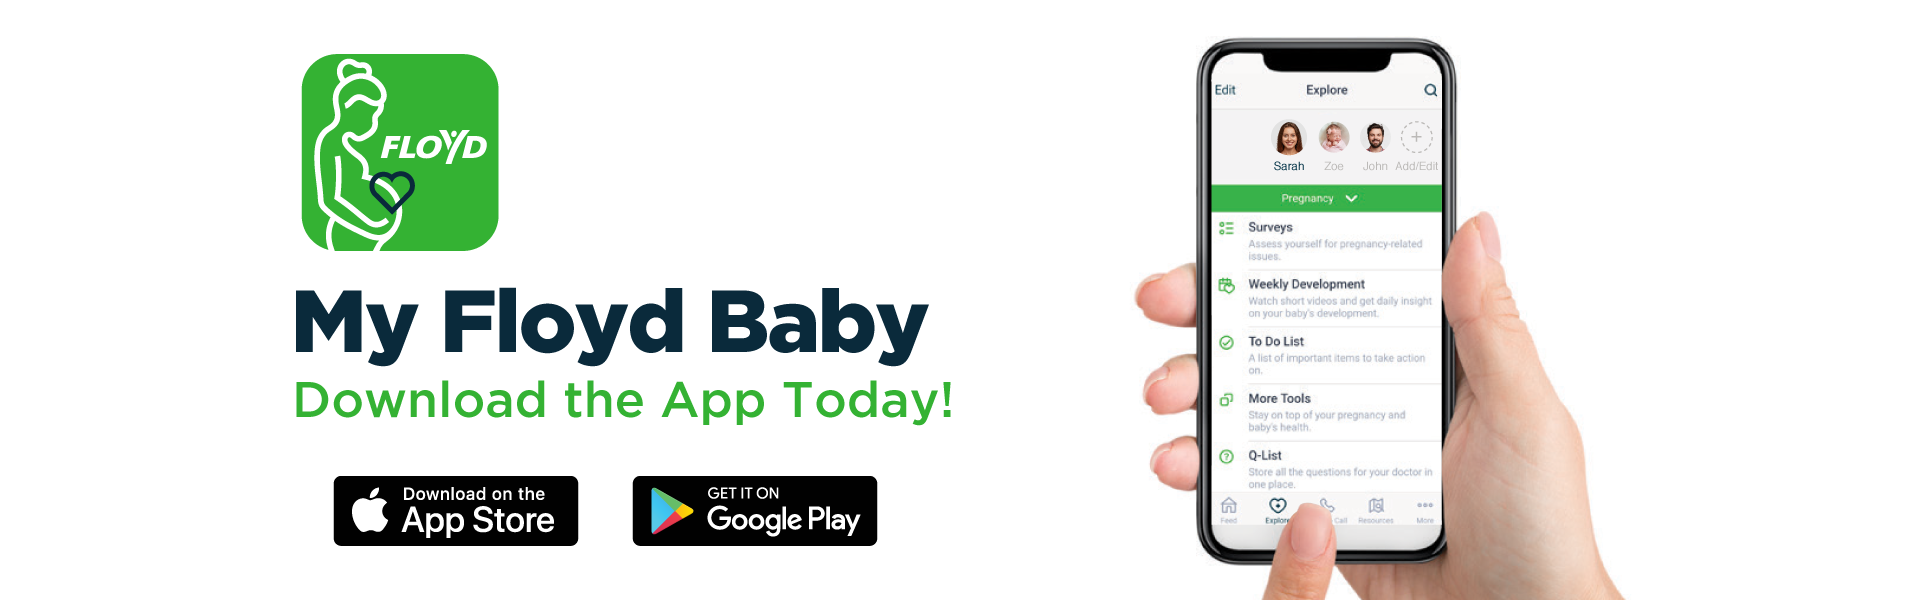 Download My Floyd Baby App